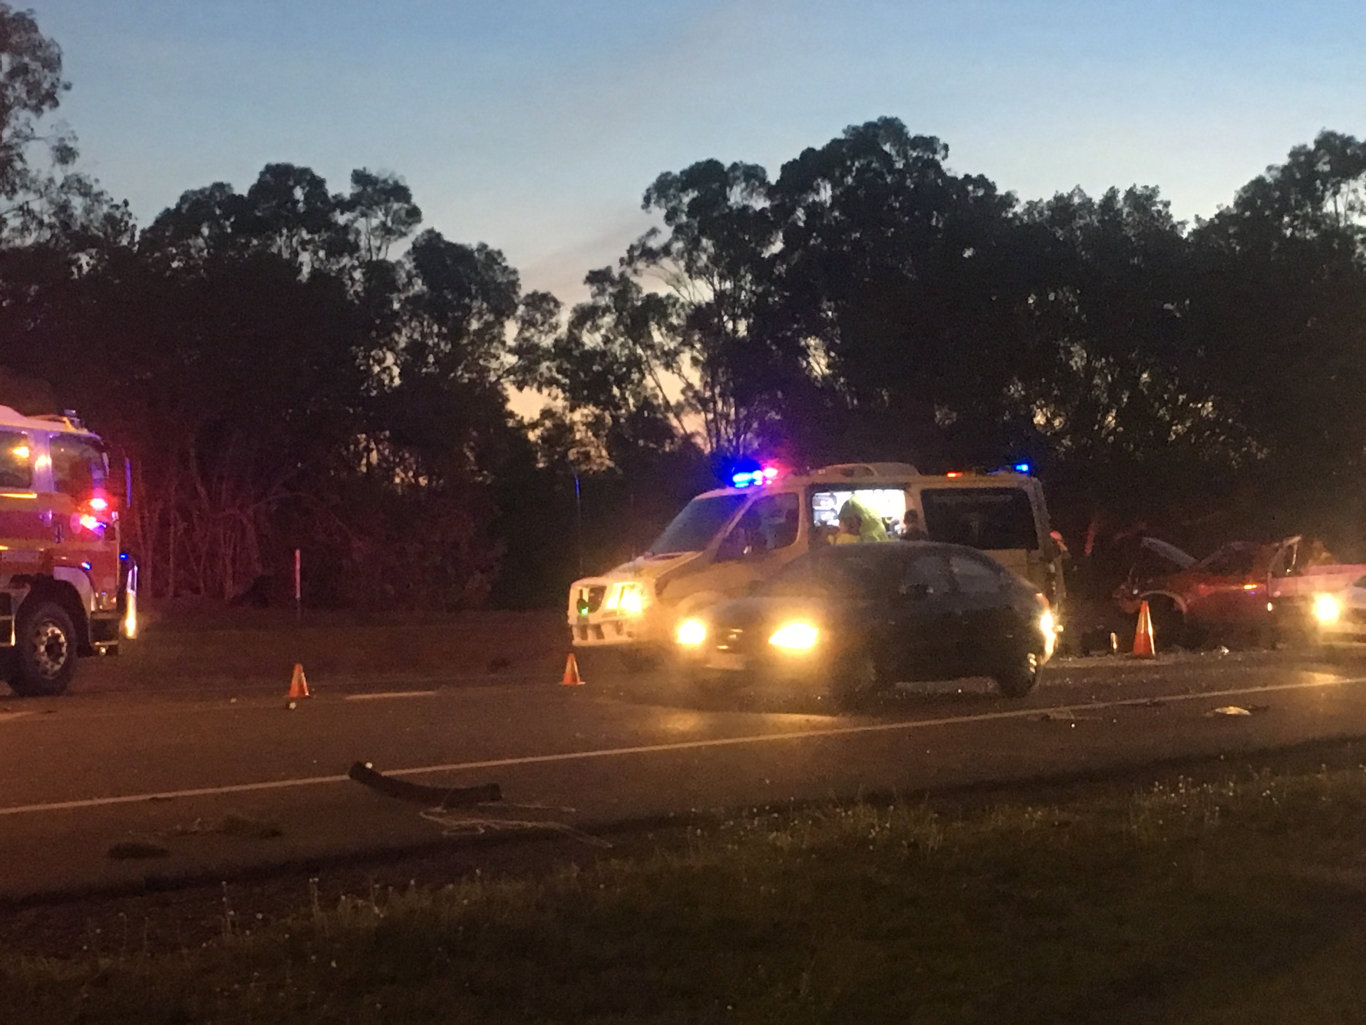 A man was lucky to escape with only minor injuries after reports he flipped his ute on Boyne Island Rd at 5.41pm on Monday evening.